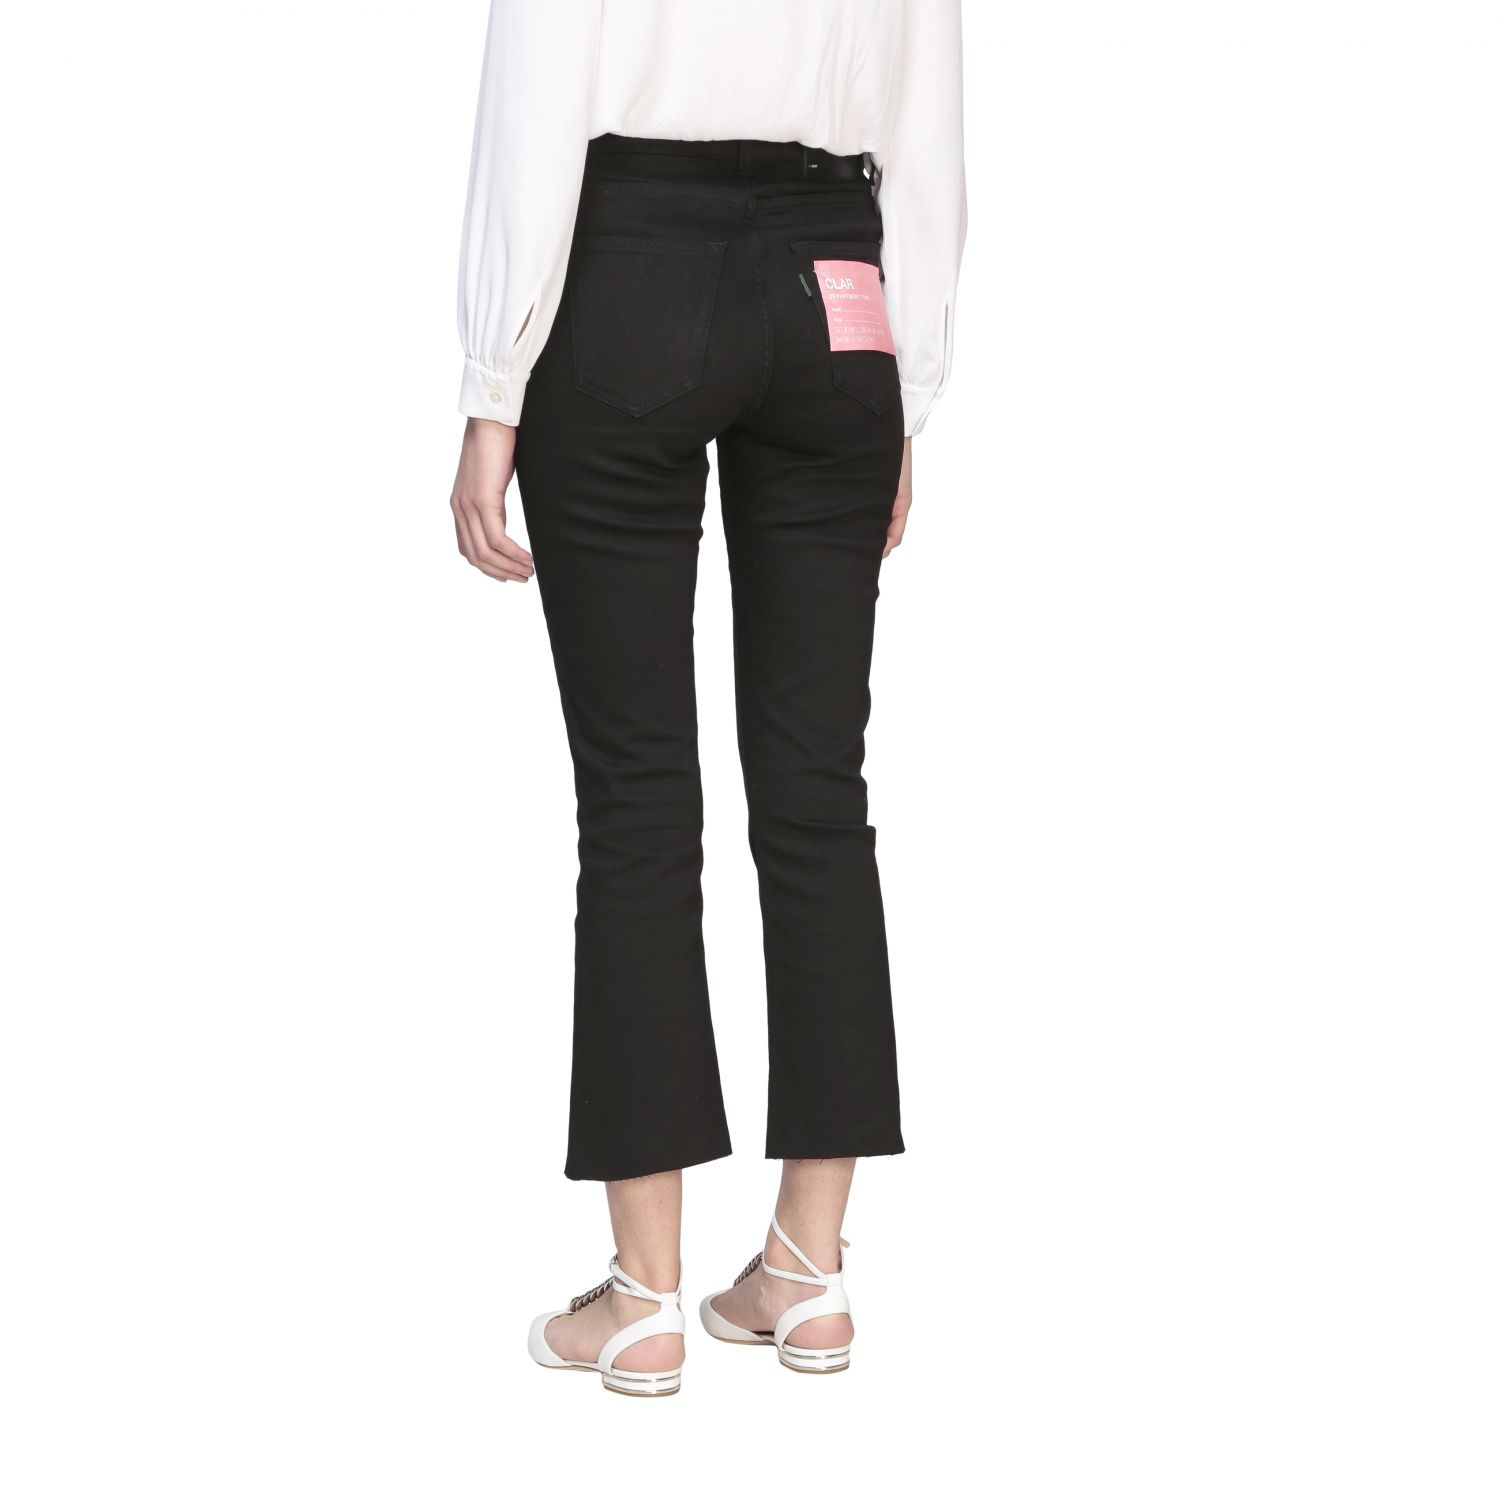 Department 5 Clare slim fit jeans with 5 pockets black 3